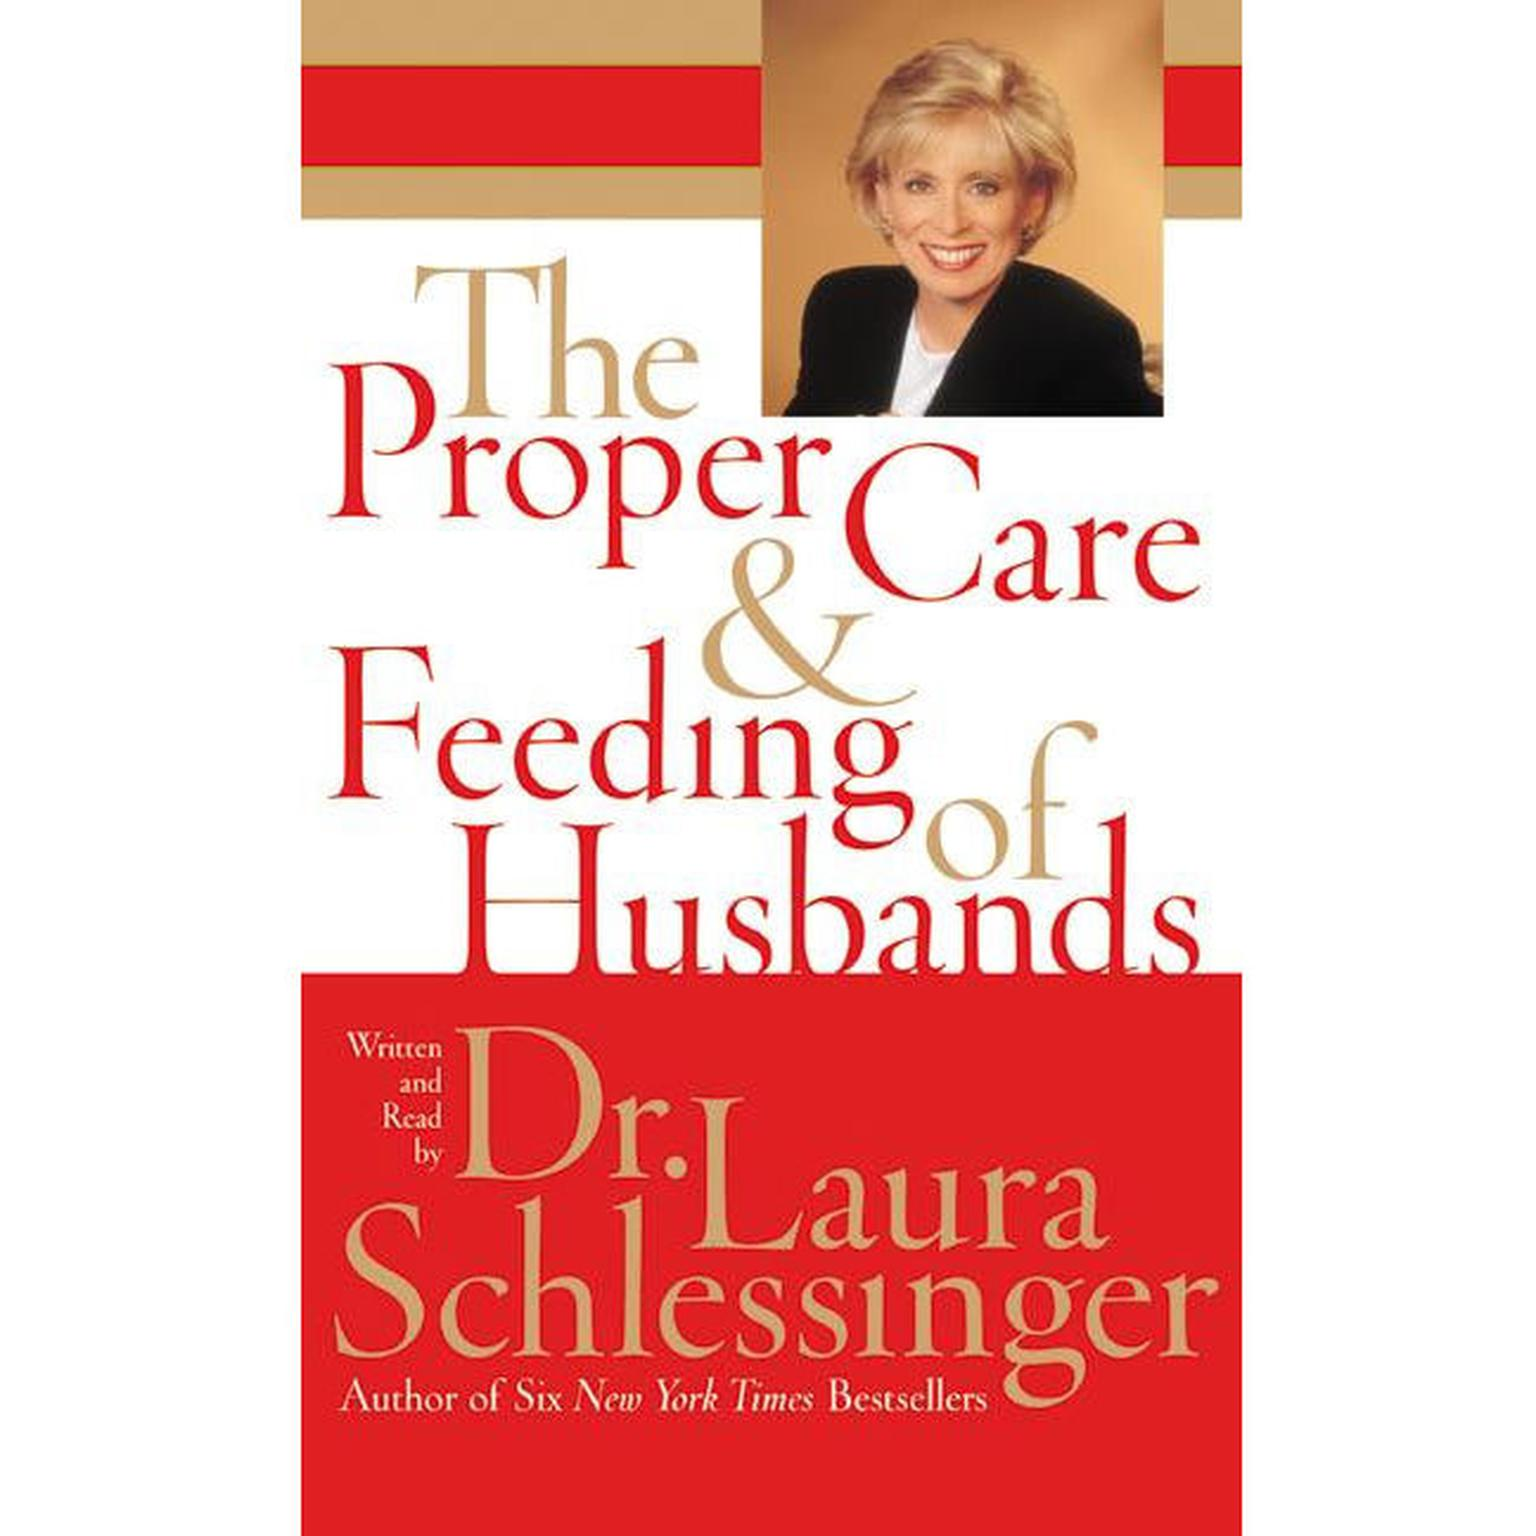 Printable The Proper Care and Feeding of Husbands Audiobook Cover Art